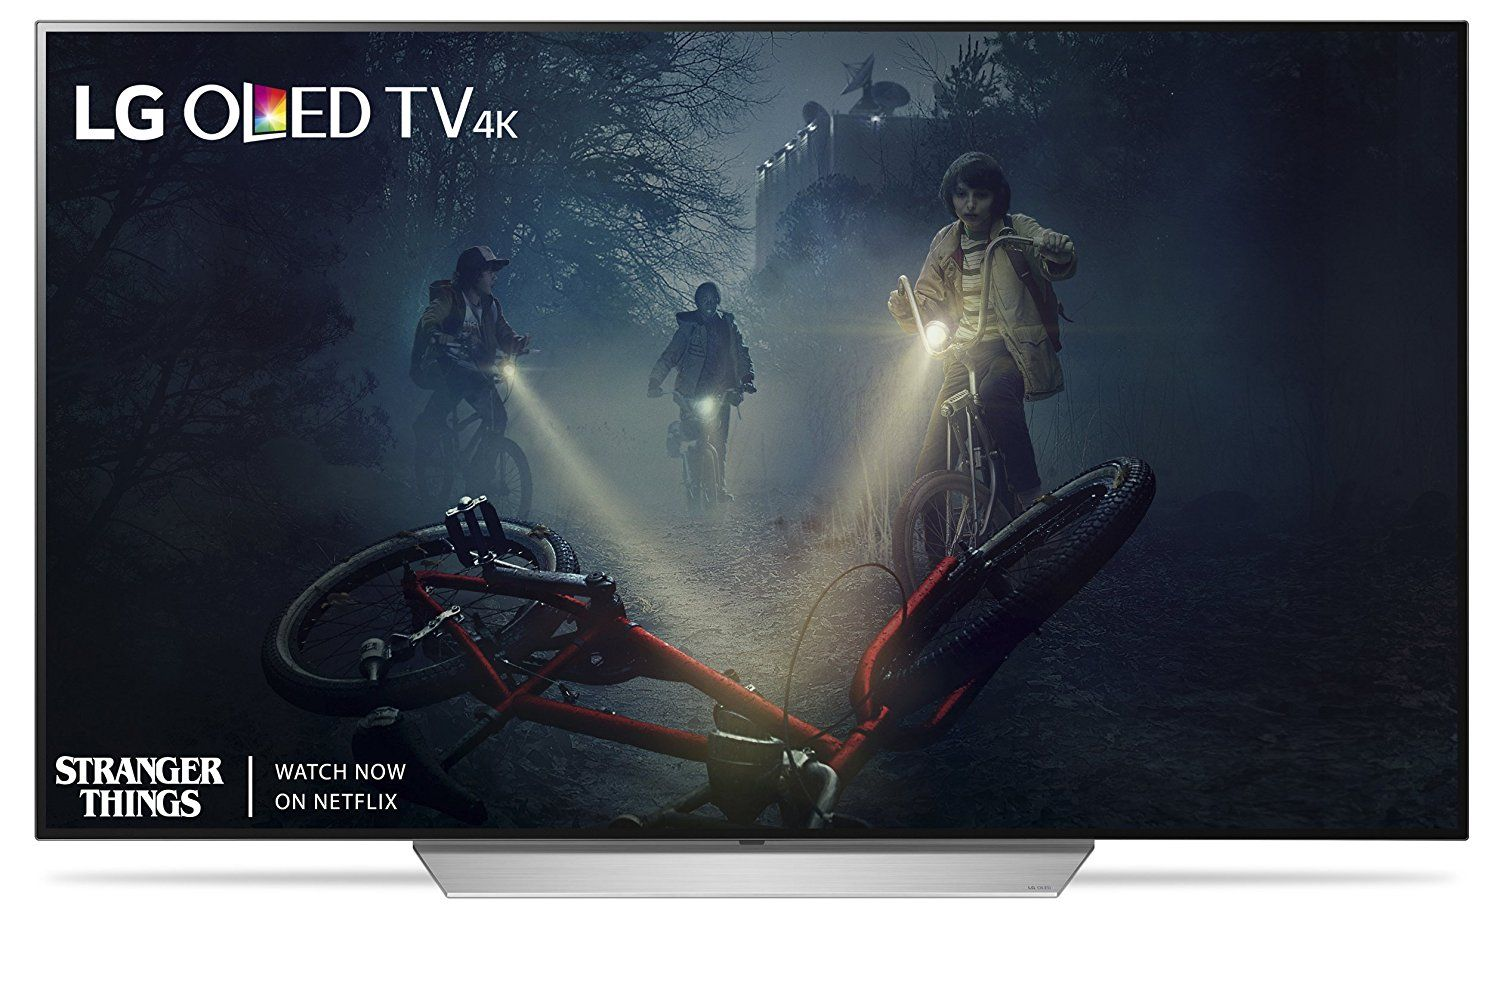 Best 4K TV 2018, 4K TV, OLED TV, Panasonic TV, LG OLED